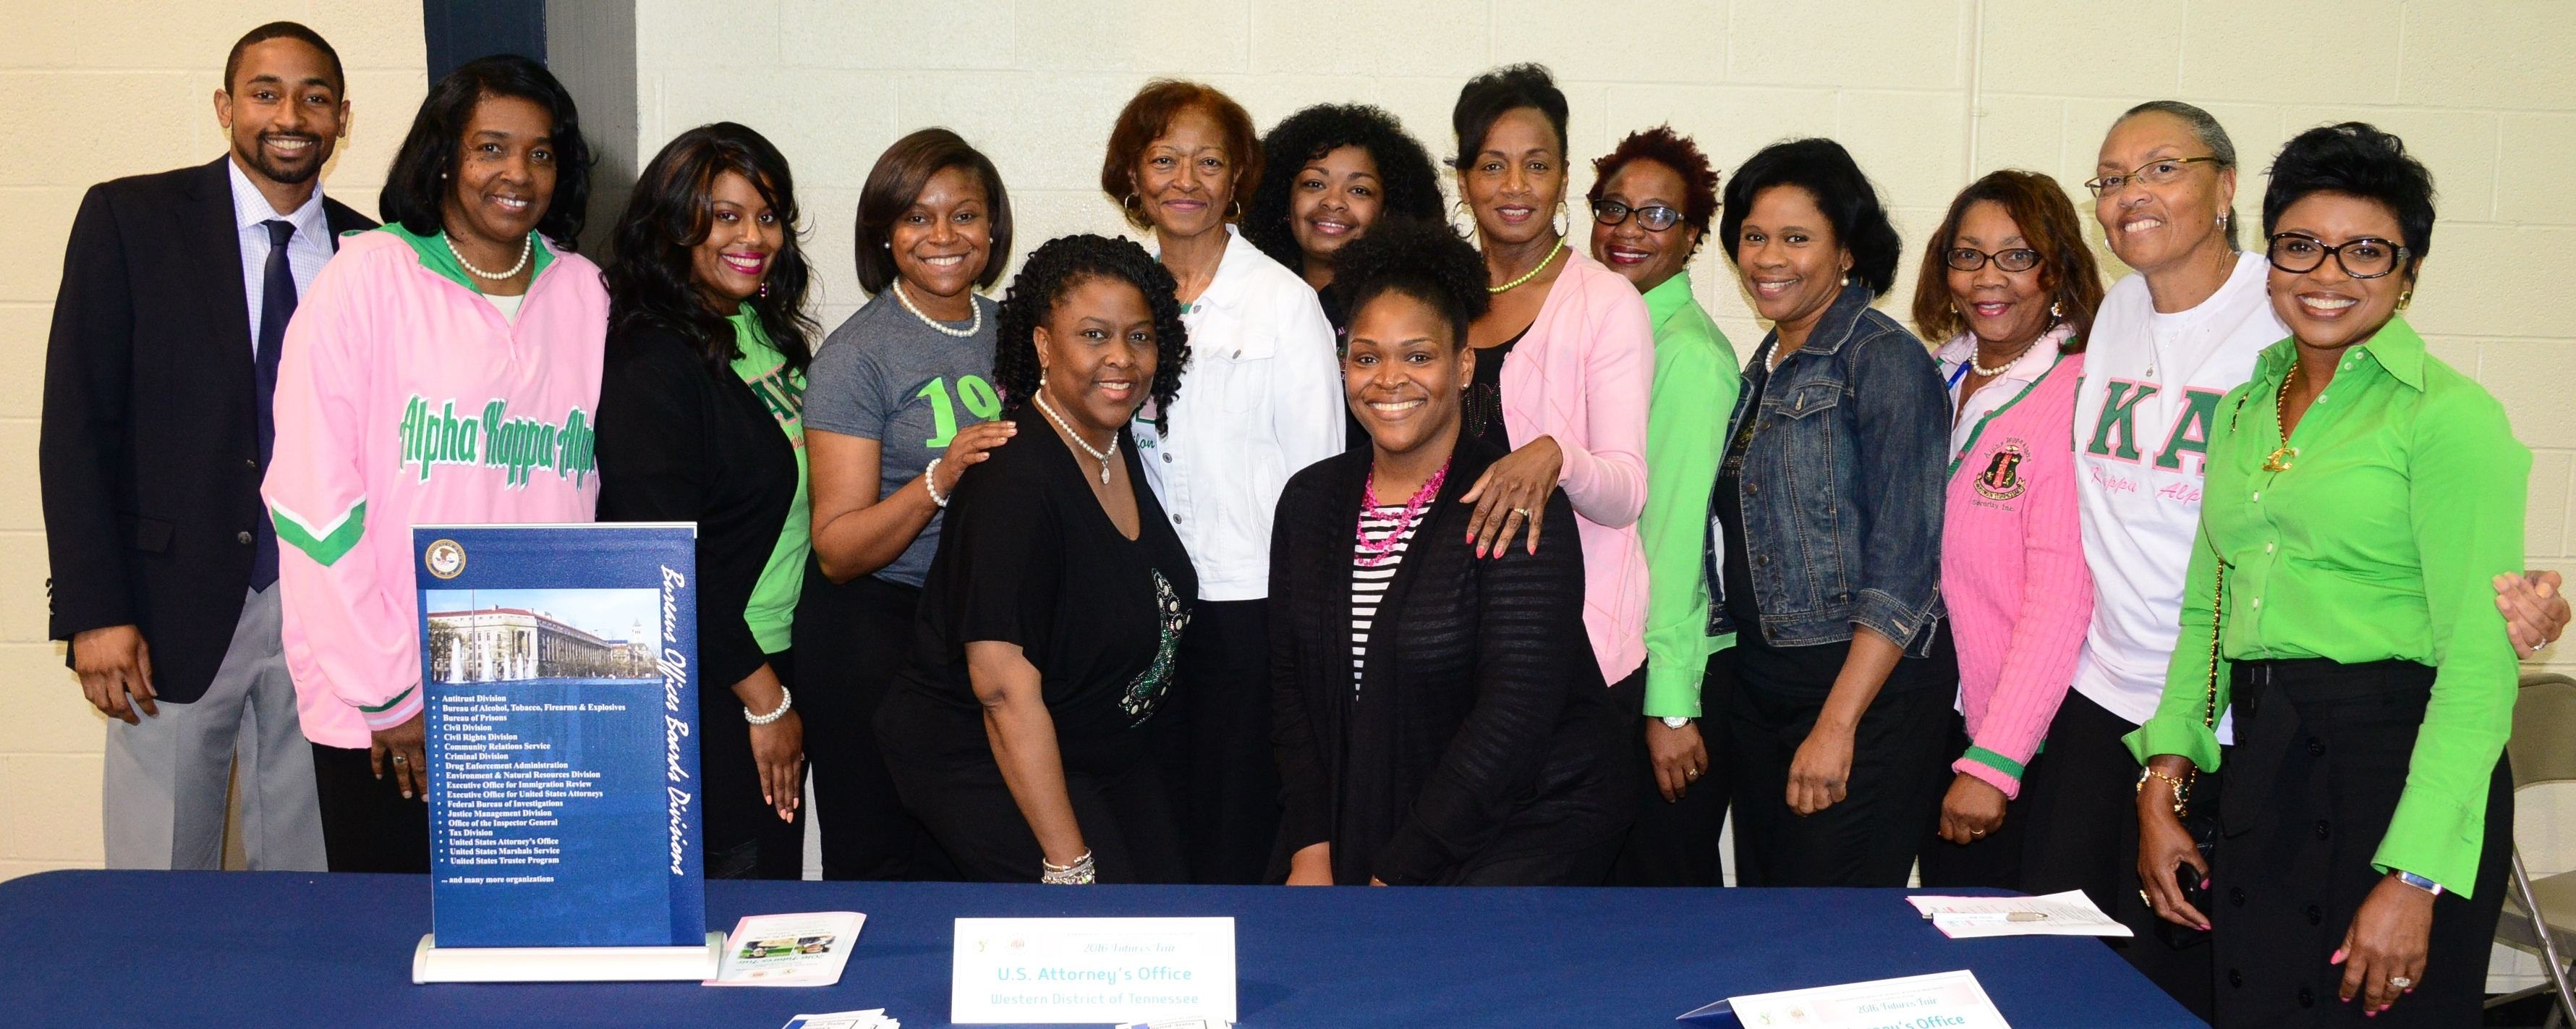 "Community Outreach Specialist/PIO Louis Goggans (L) and AUSA Reagan Taylor (Center R) pose with AKA sorority members at their ""Future's Fair"" event for high school and college students."